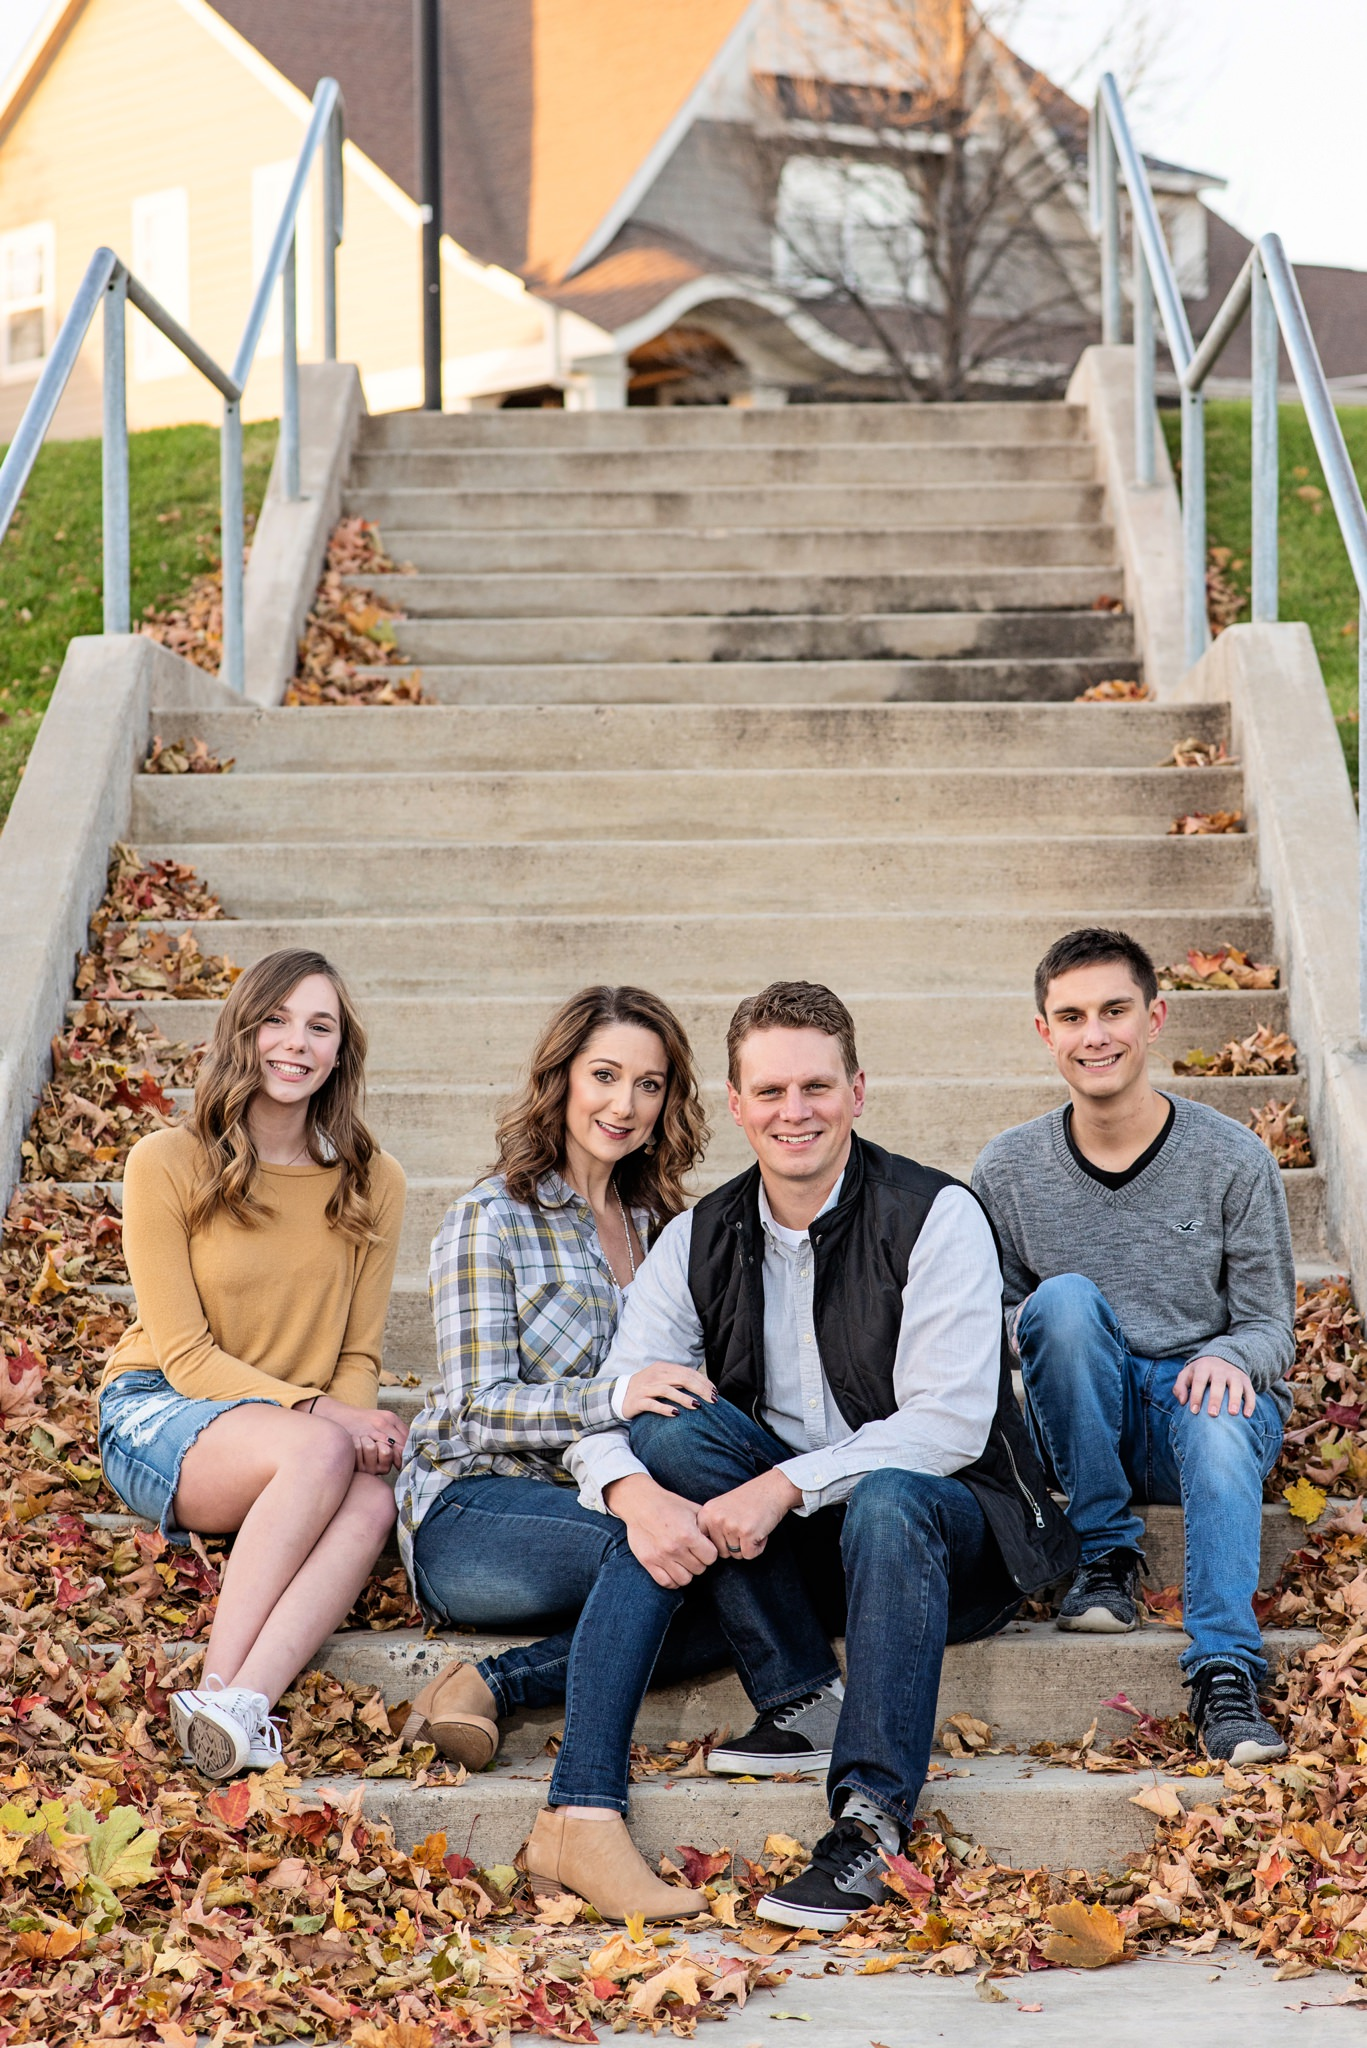 Wittwer-Family-Rotella-Photography-2018-50_WEB.jpg